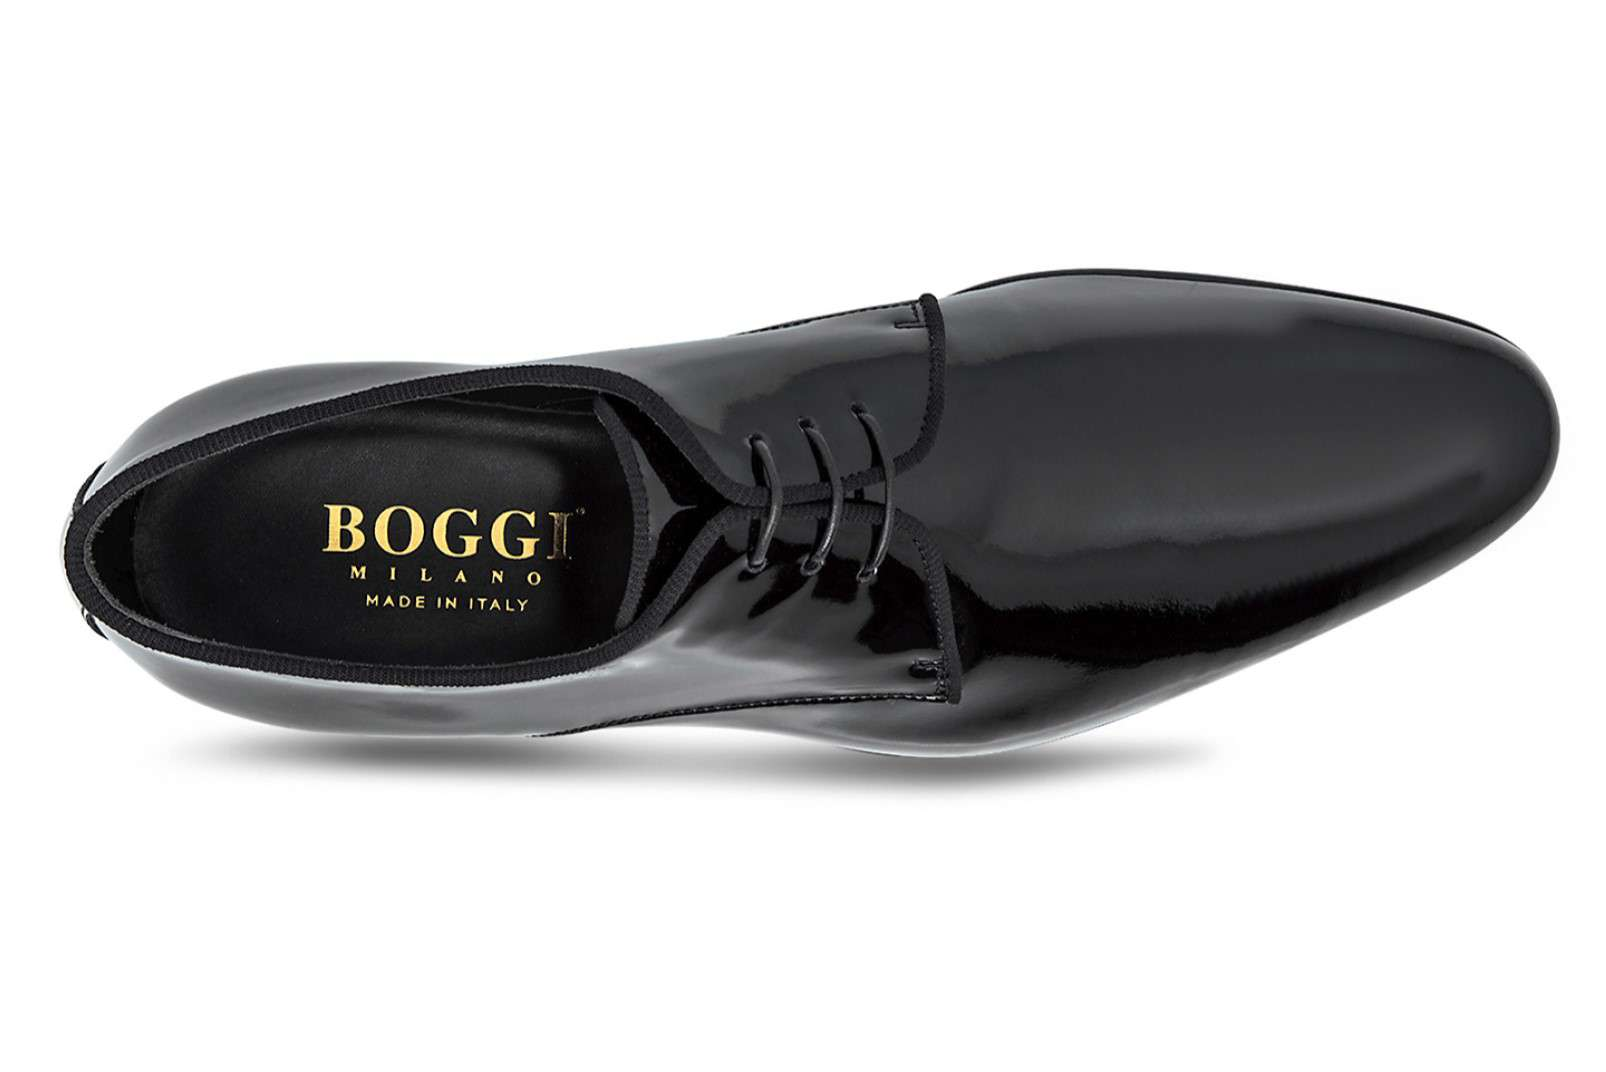 Boggi Milano patent leather shoes BO17C007001